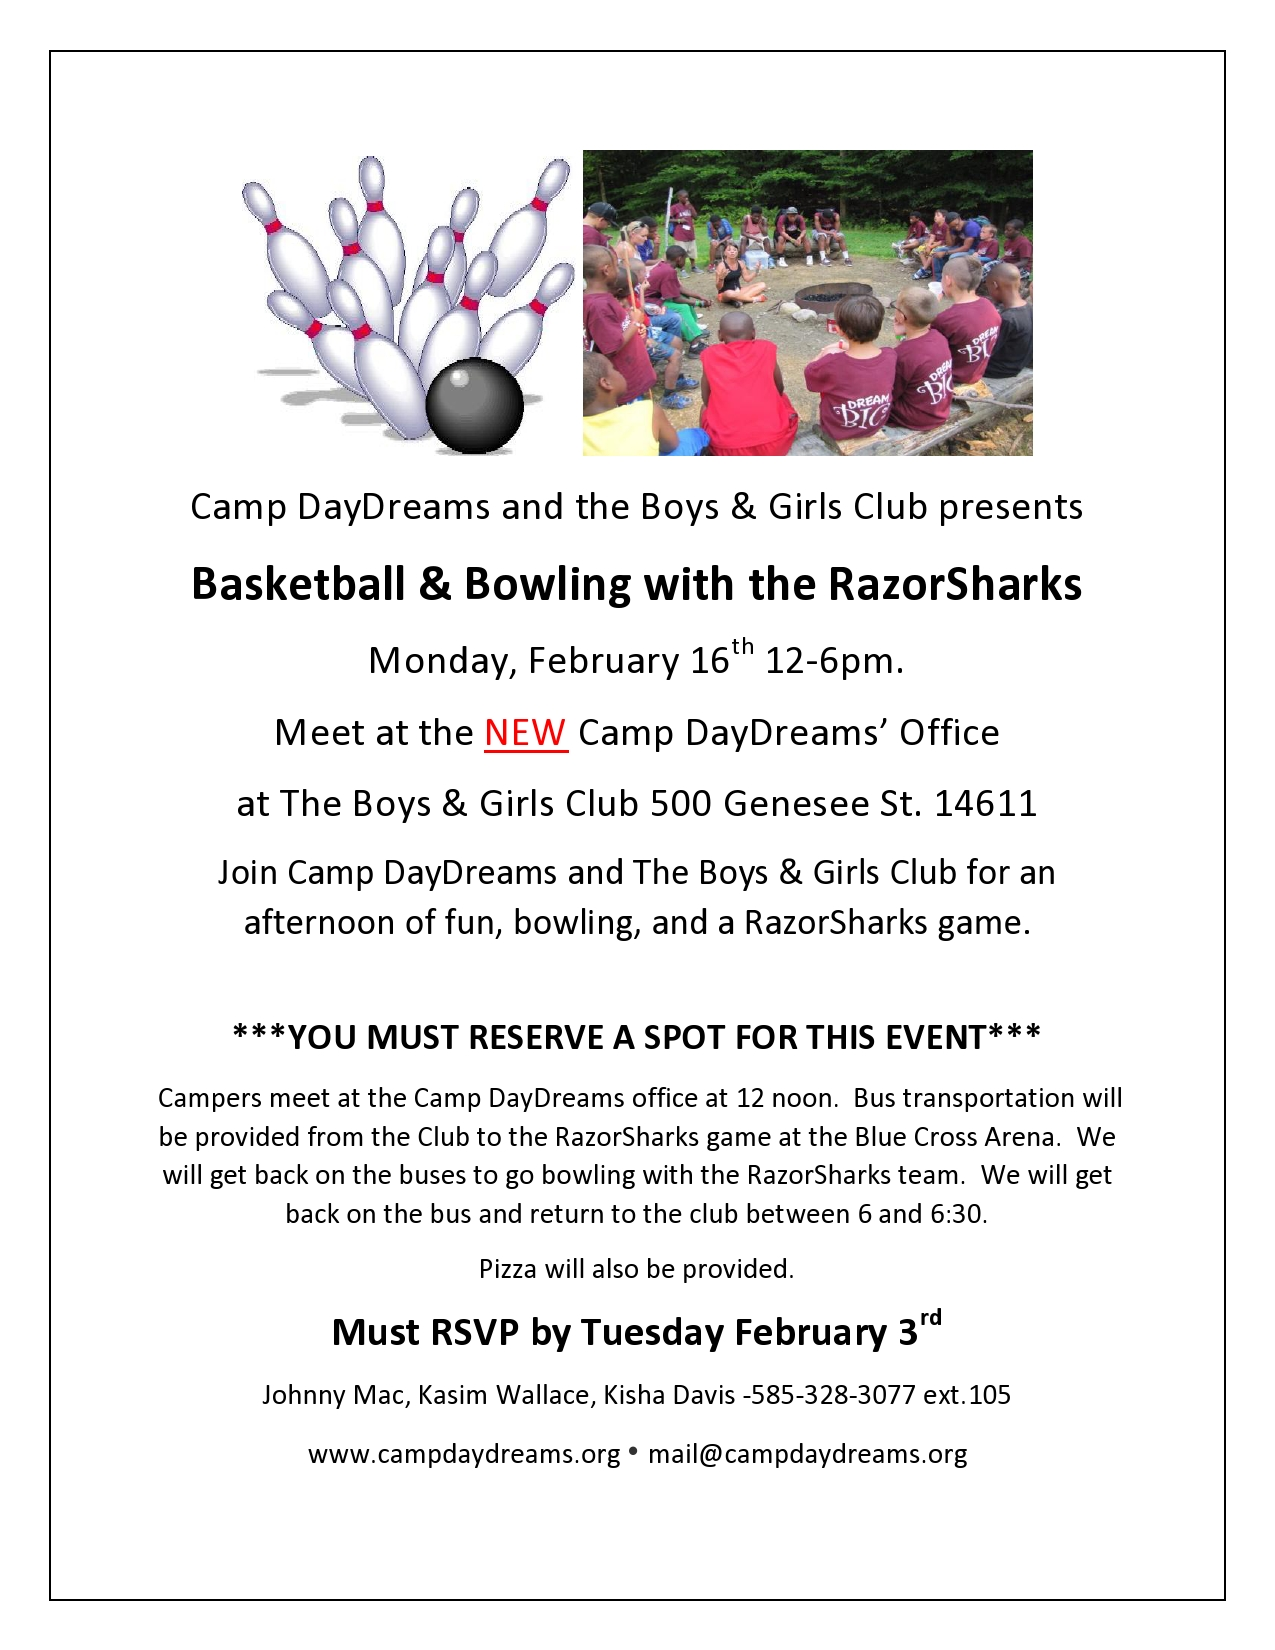 Camp DayDreams Bowling with The Razor Sharks Flyer-page0001.jpg